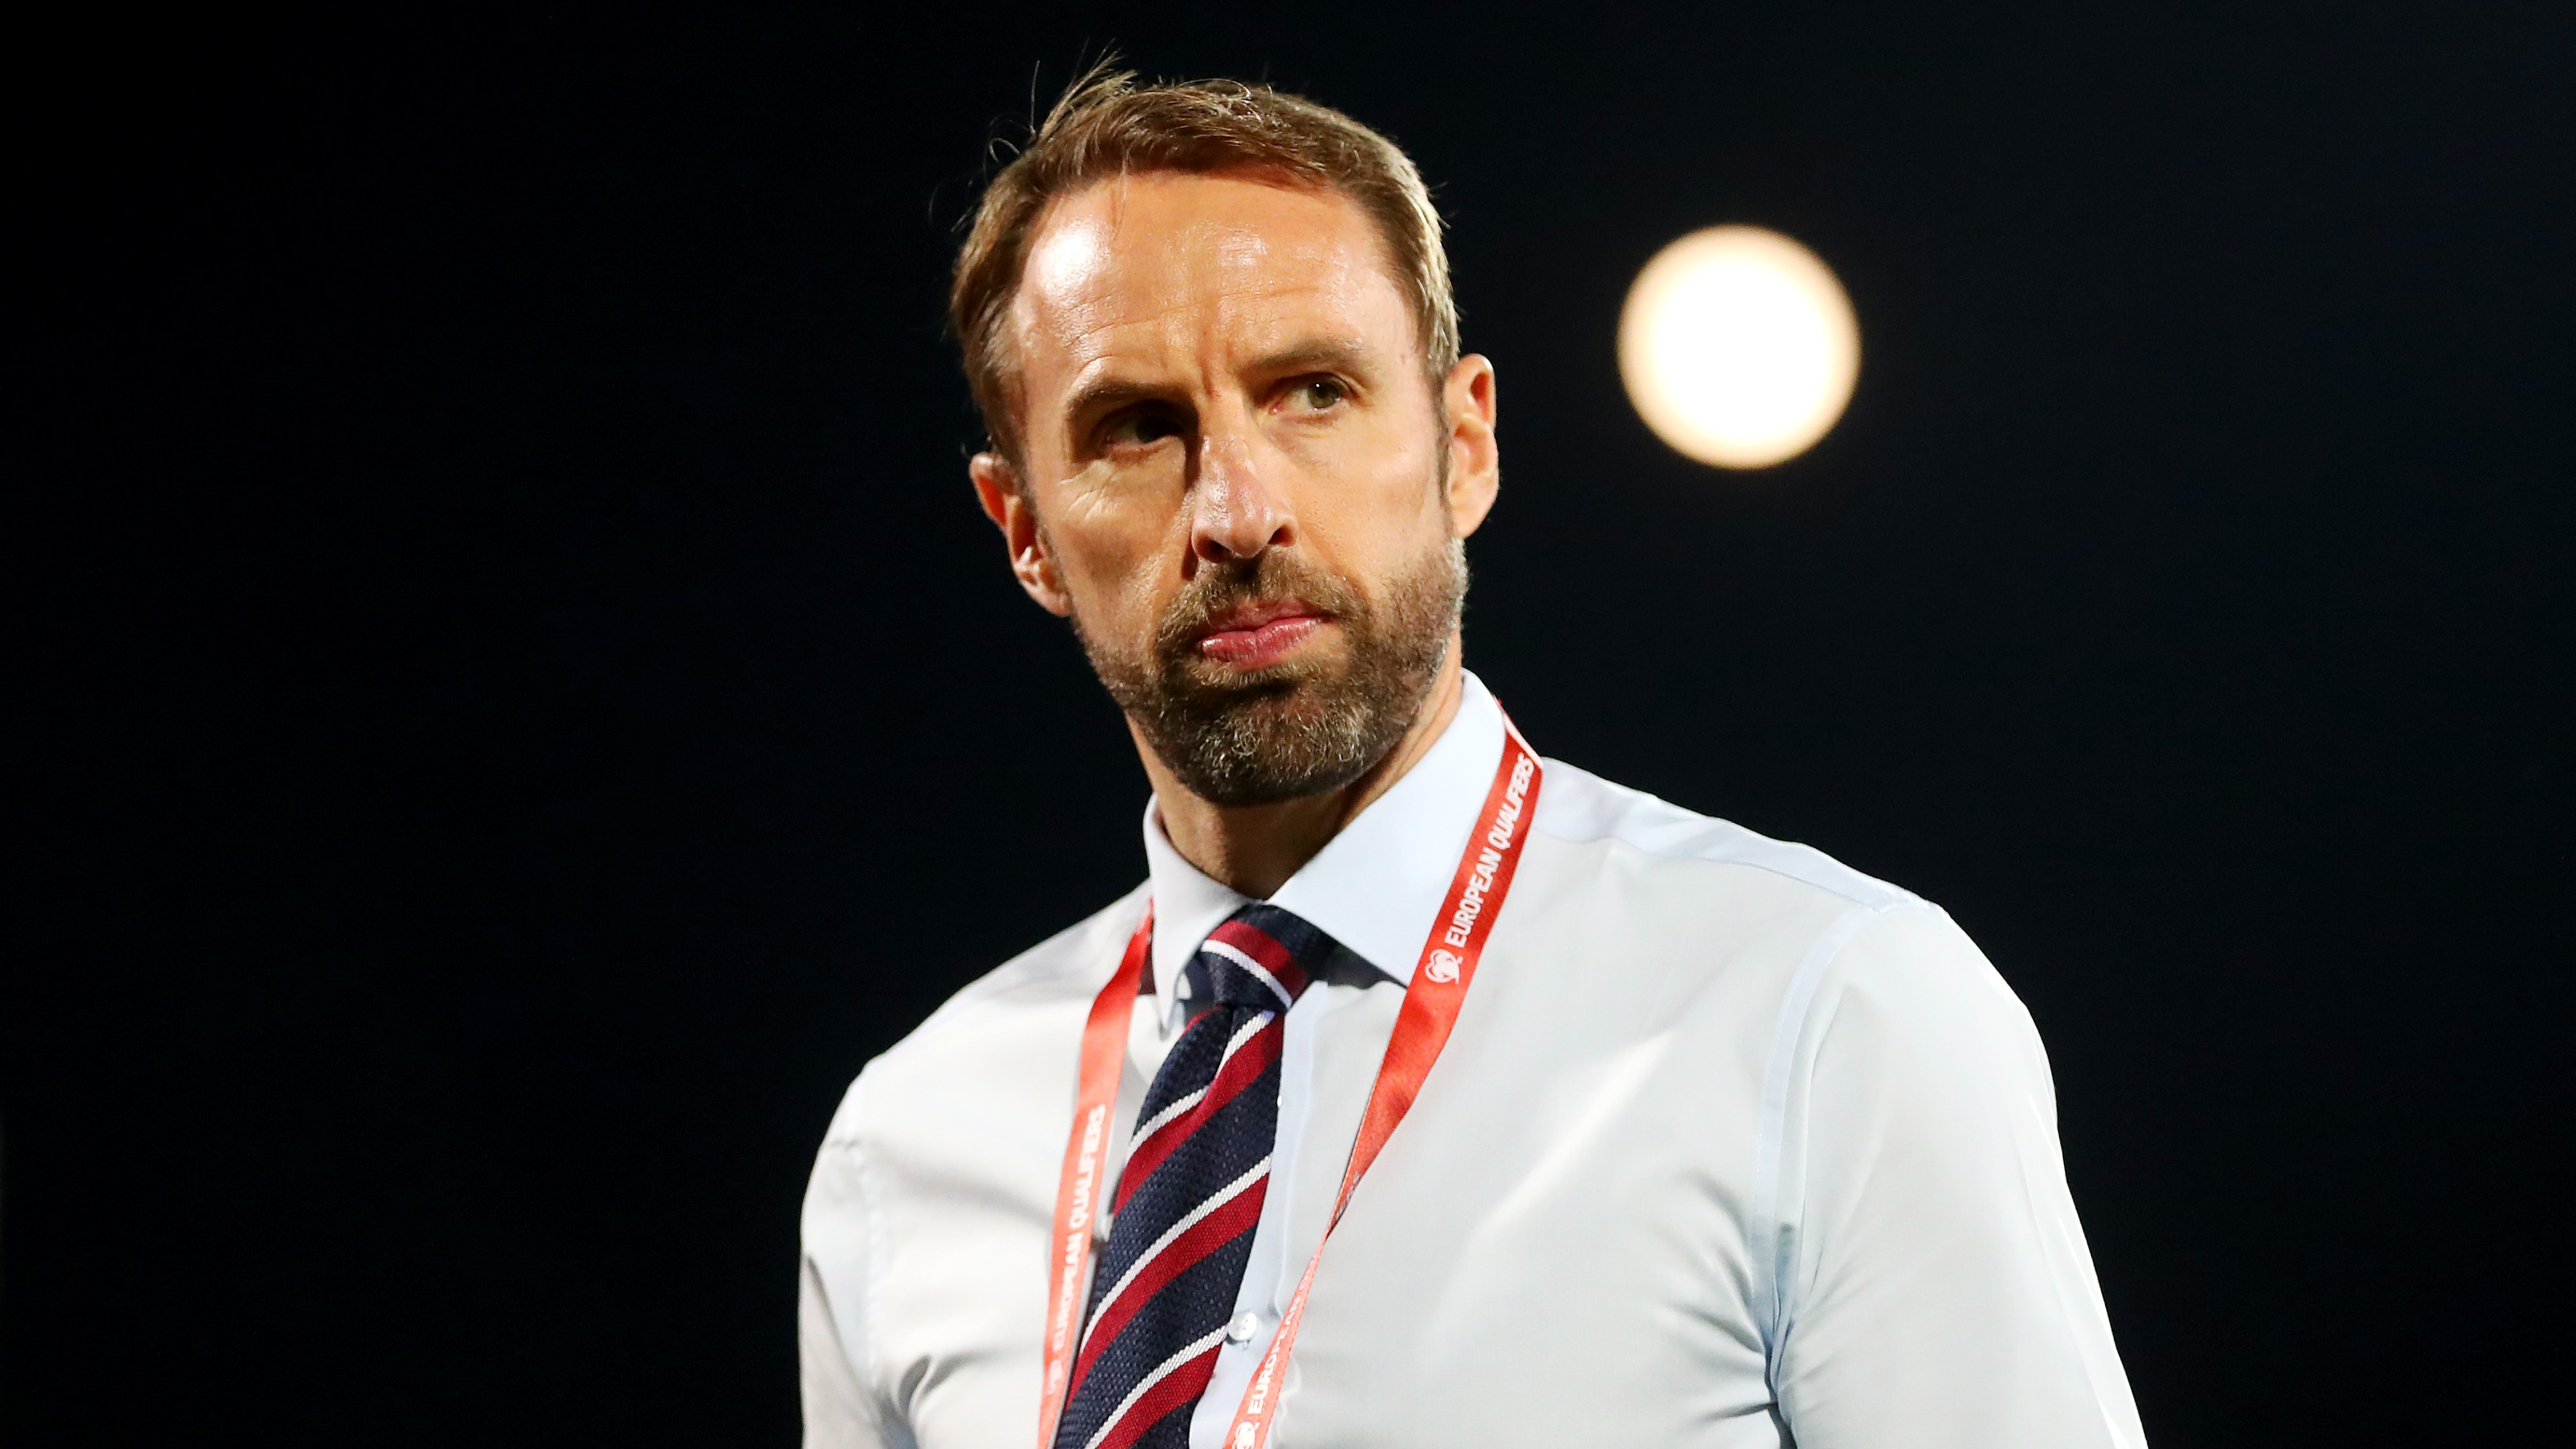 England boss Southgate considers Sterling action 'appropriate' after criticism in wake of Gomez row